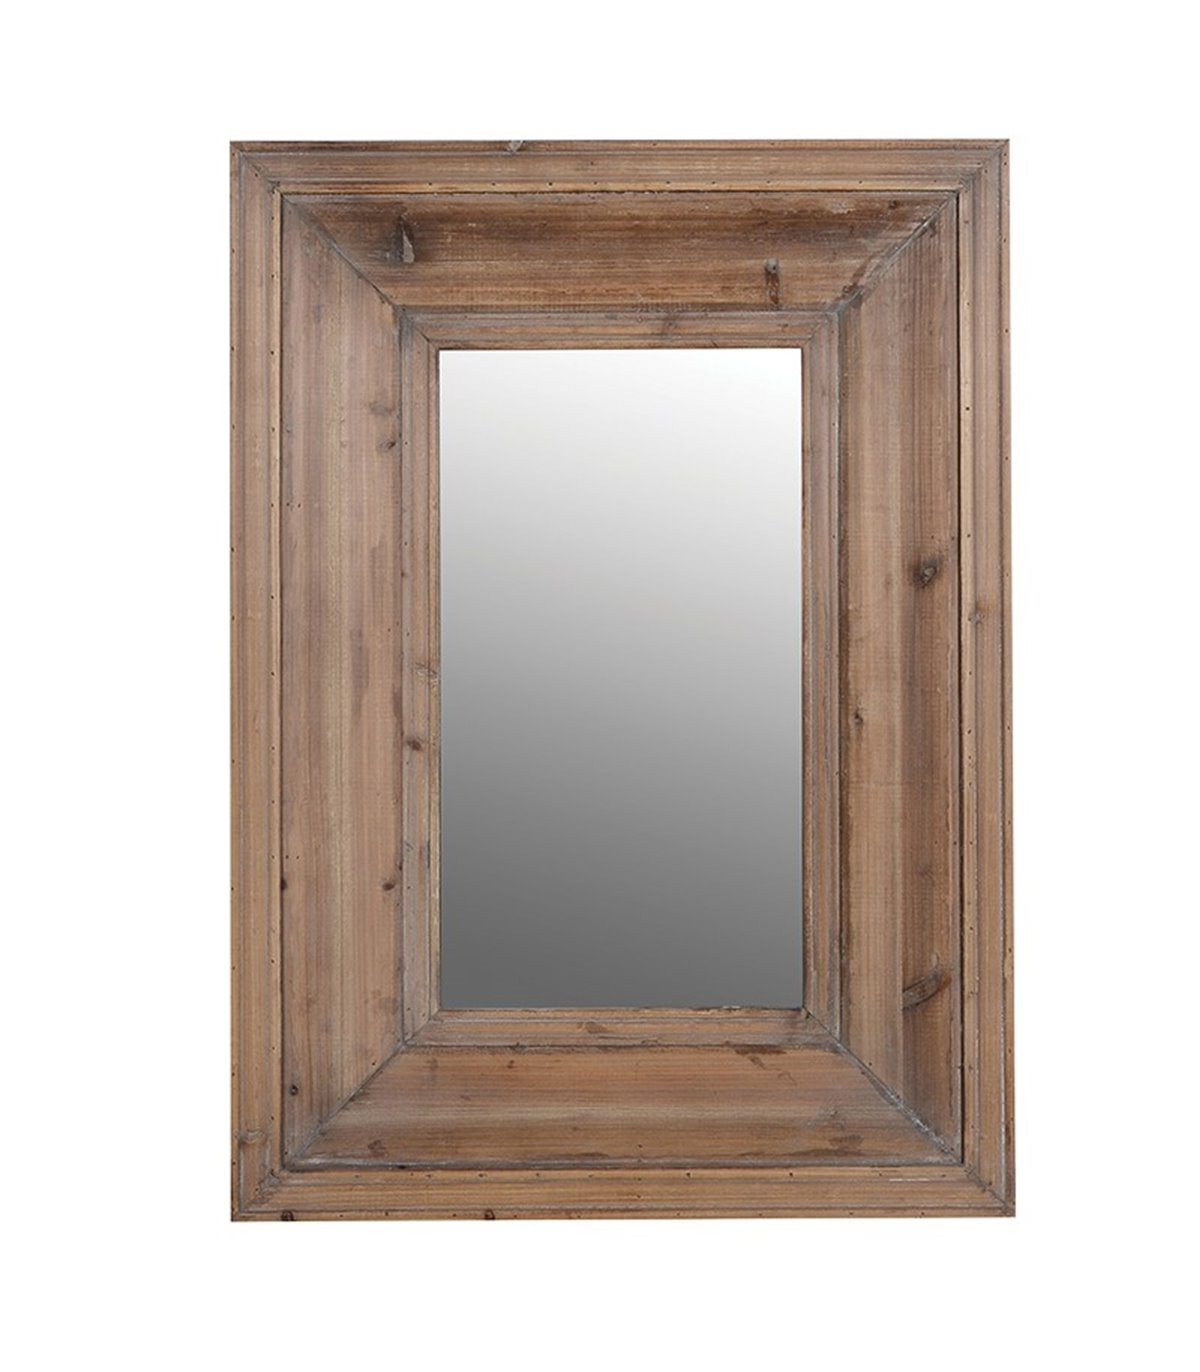 Latest Wood Frame Wall Mirror With Regard To Wood Framed Wall Mirrors (Gallery 17 of 20)